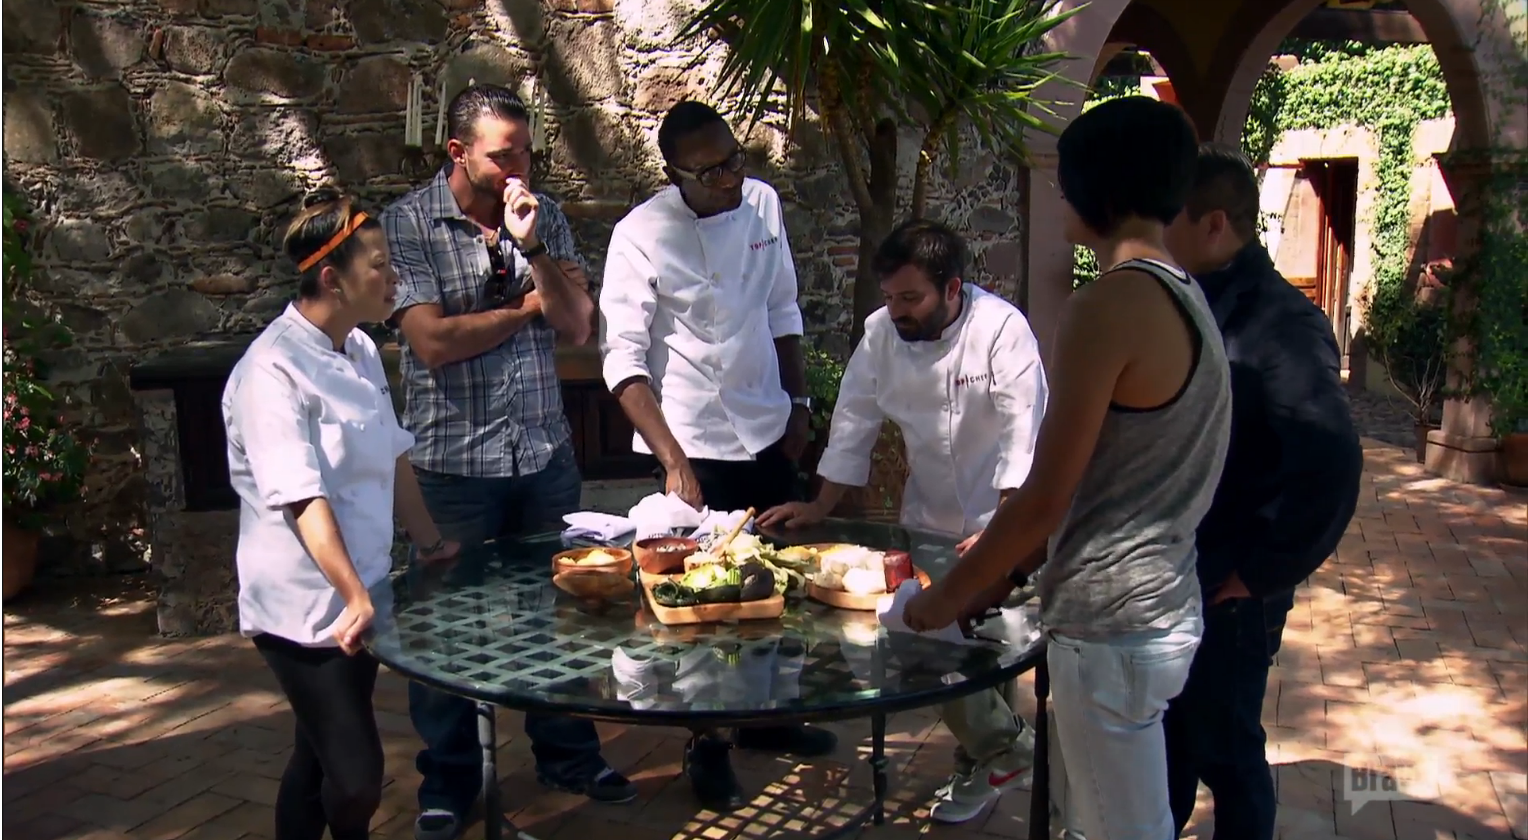 The chefs pick ingredients and Doug gets stuck with ant eggs. (Screenshot: Bravo TV)